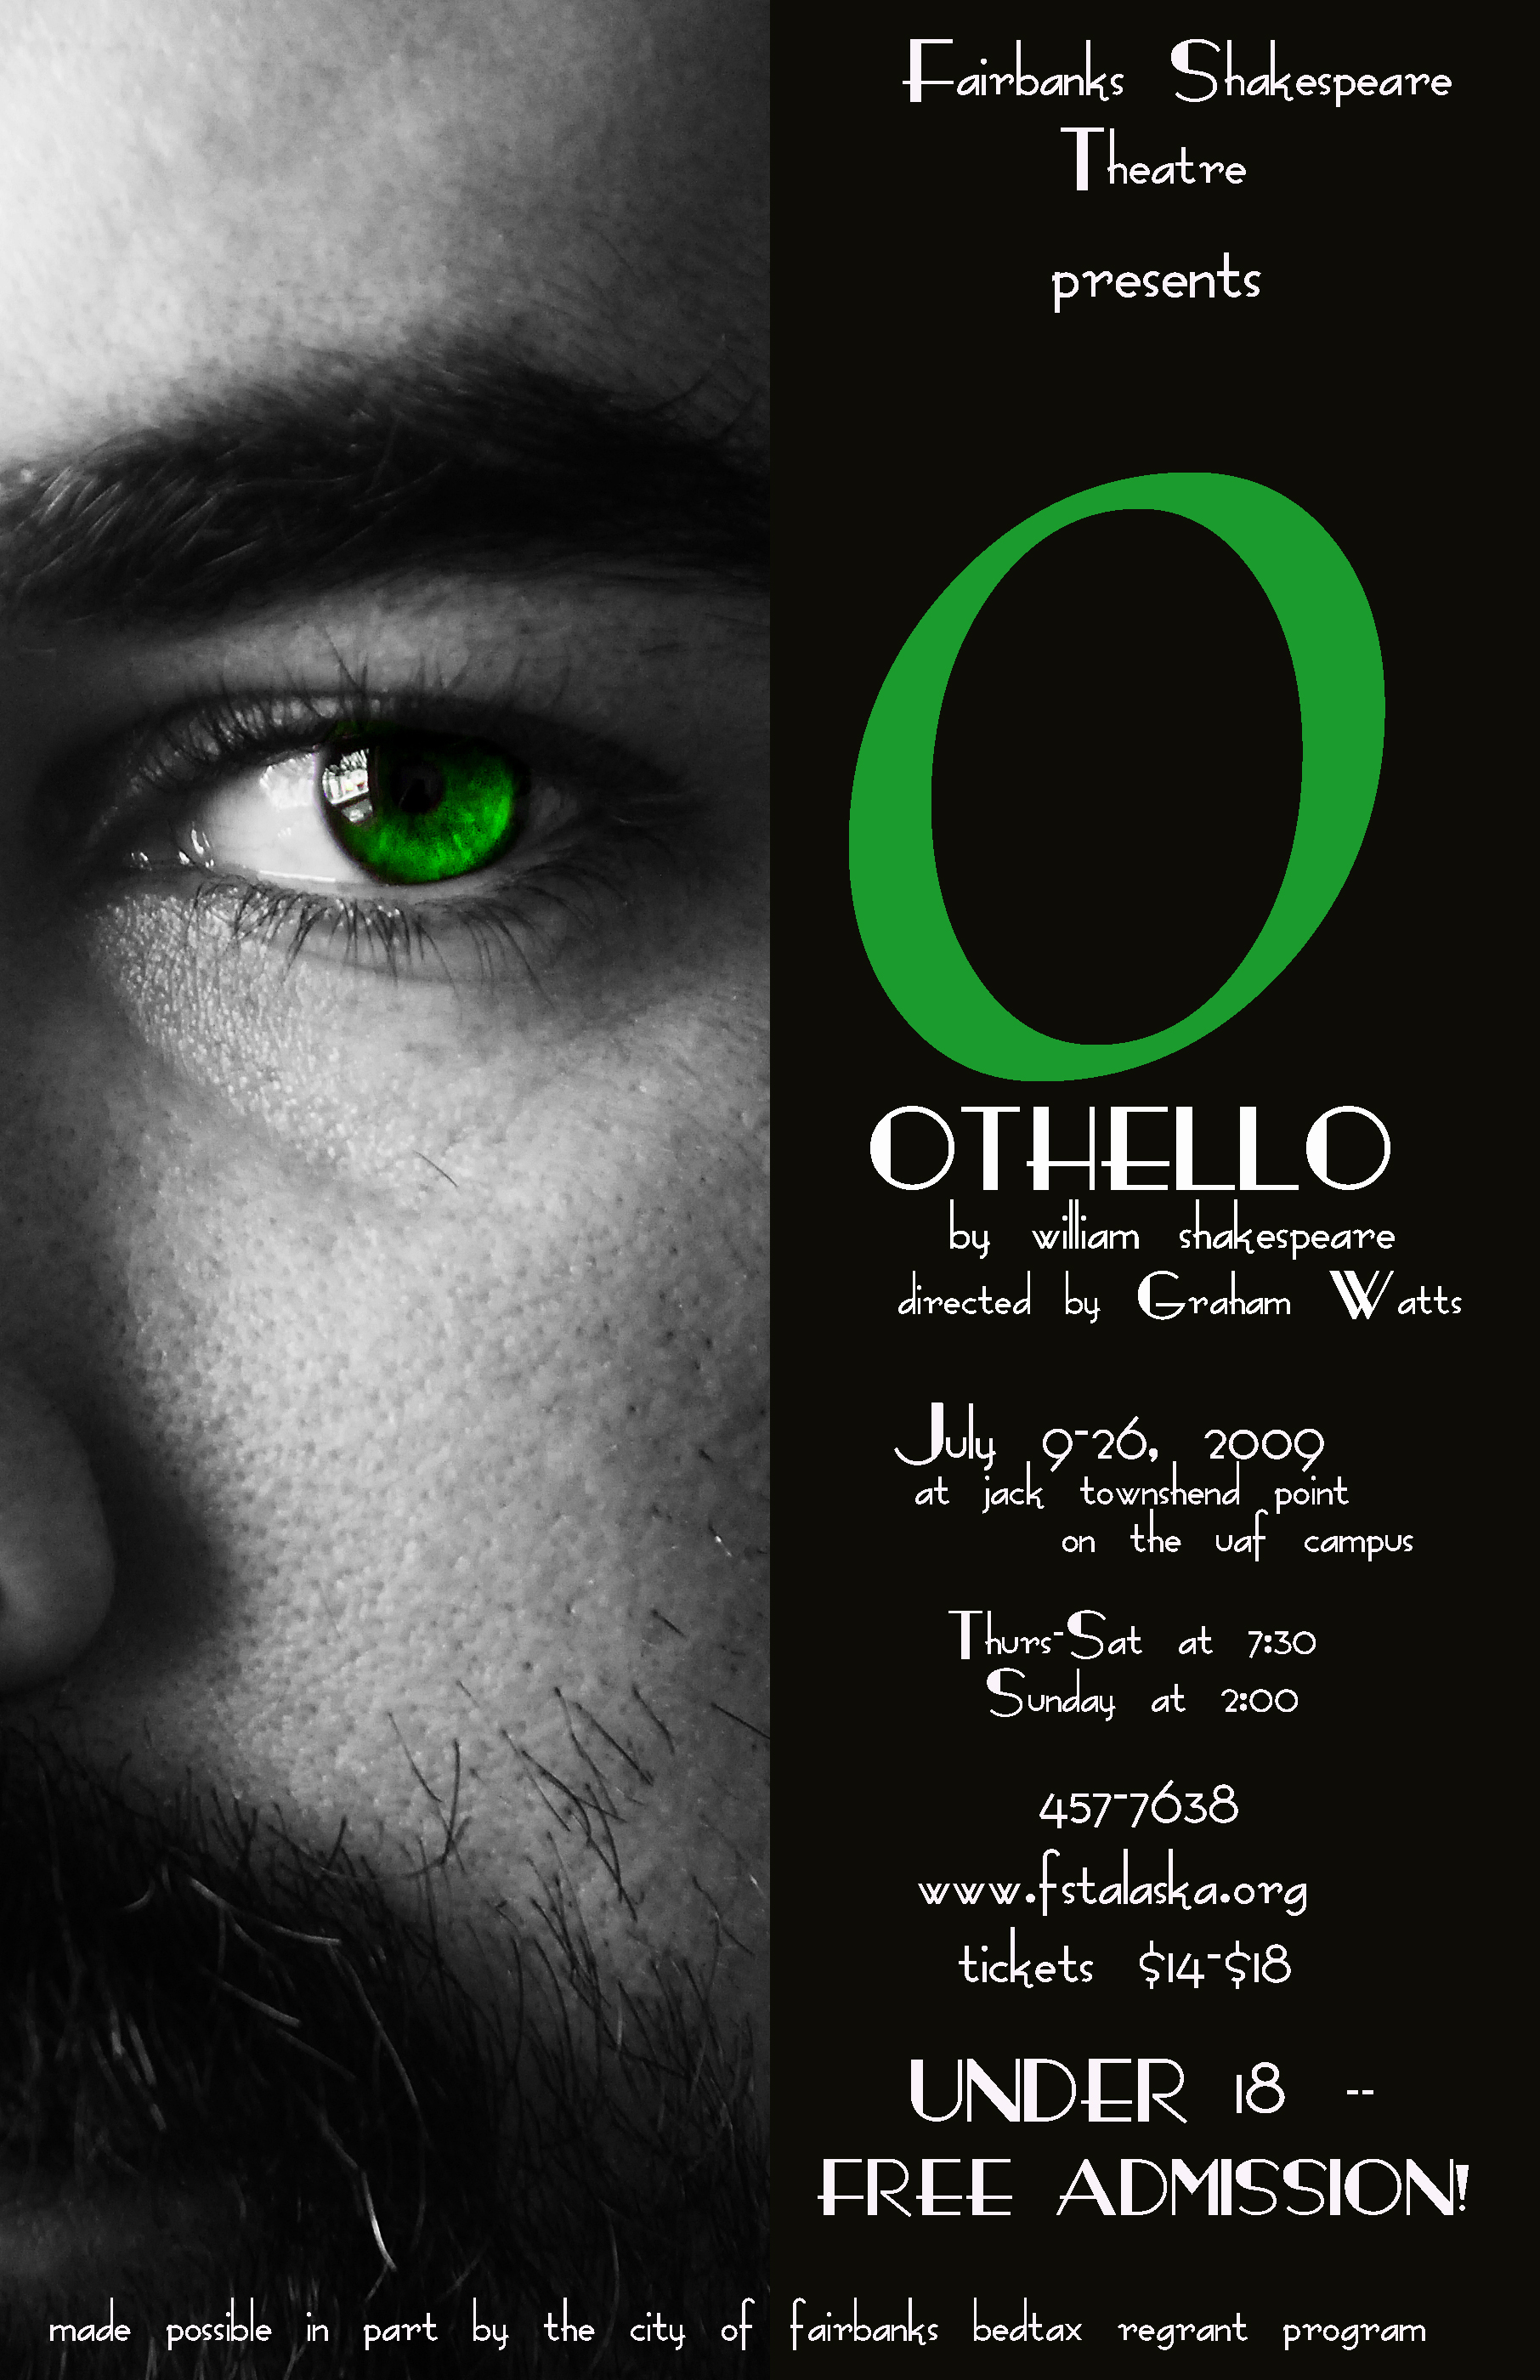 othello a tragedy without meaning Othello, the moor of venice there are a number of very specific literary conventions that a dramatic work must have to adhere to aristotle's multi-faceted definition of a tragedy one of the principle components of this definition is that a tragedy chronicles the downfall of a tragic hero.